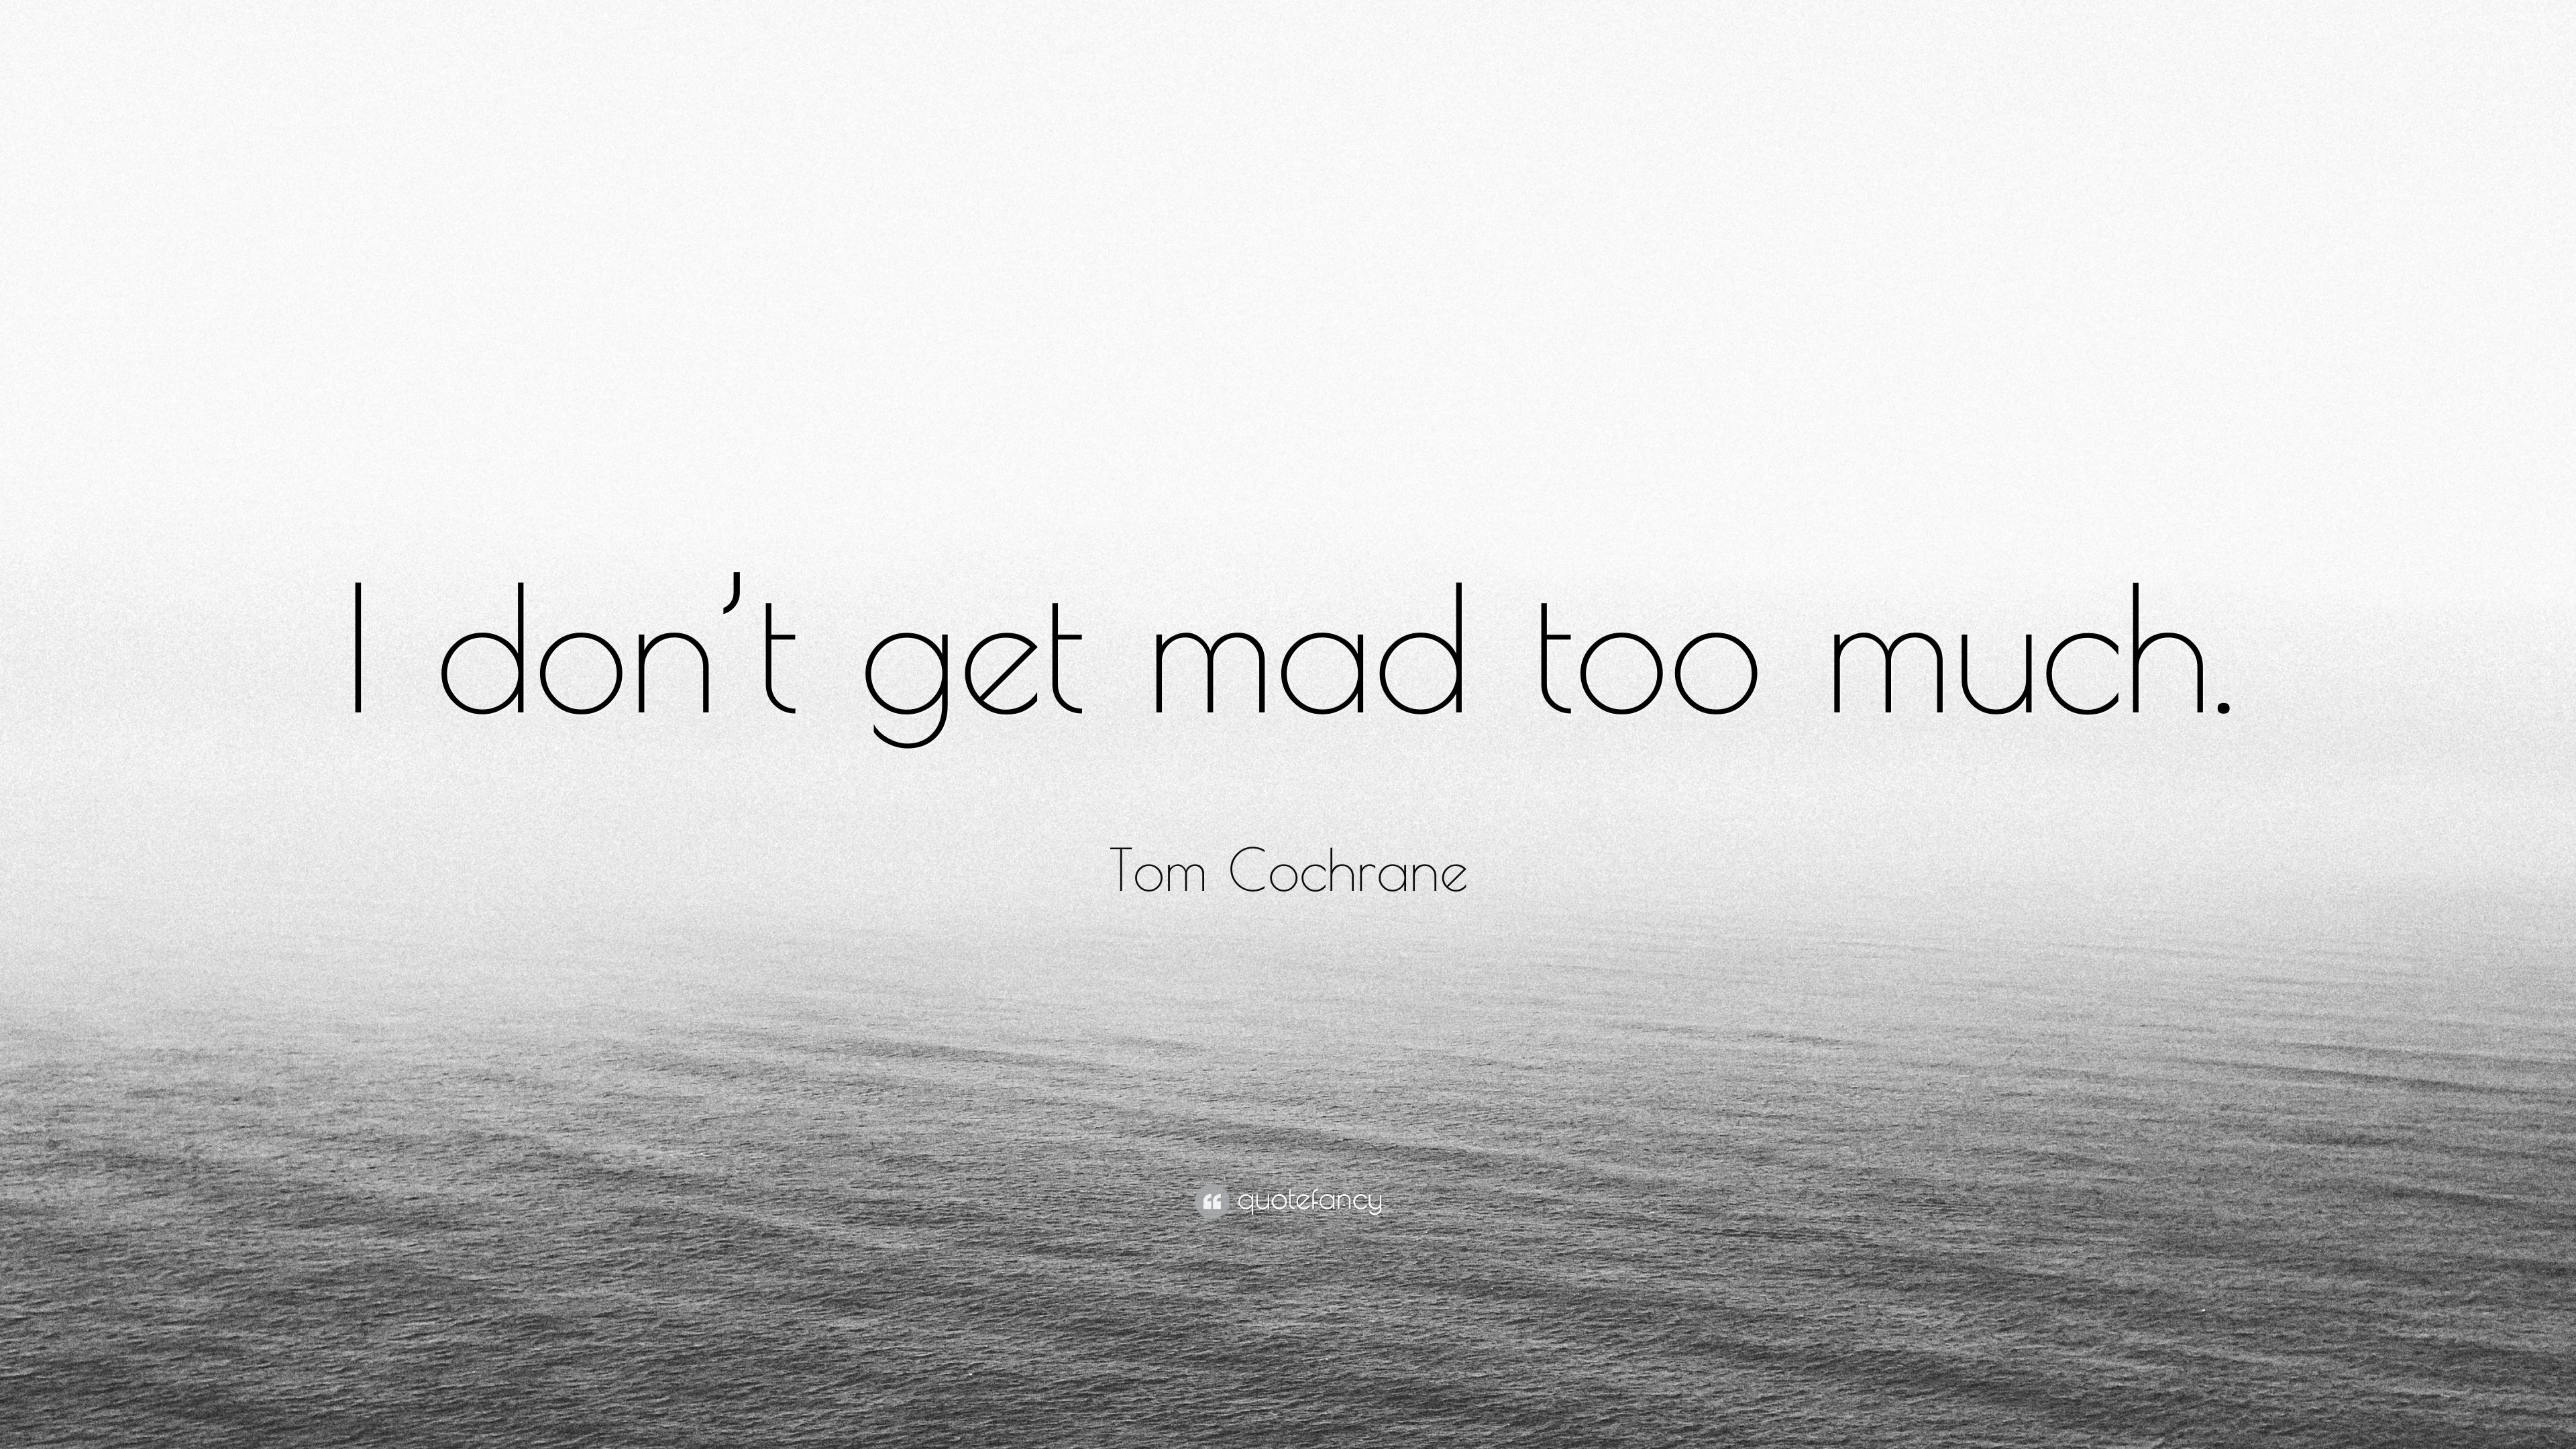 Charming Tom Cochrane Quote: U201cI Donu0027t Get Mad Too Much.u201d